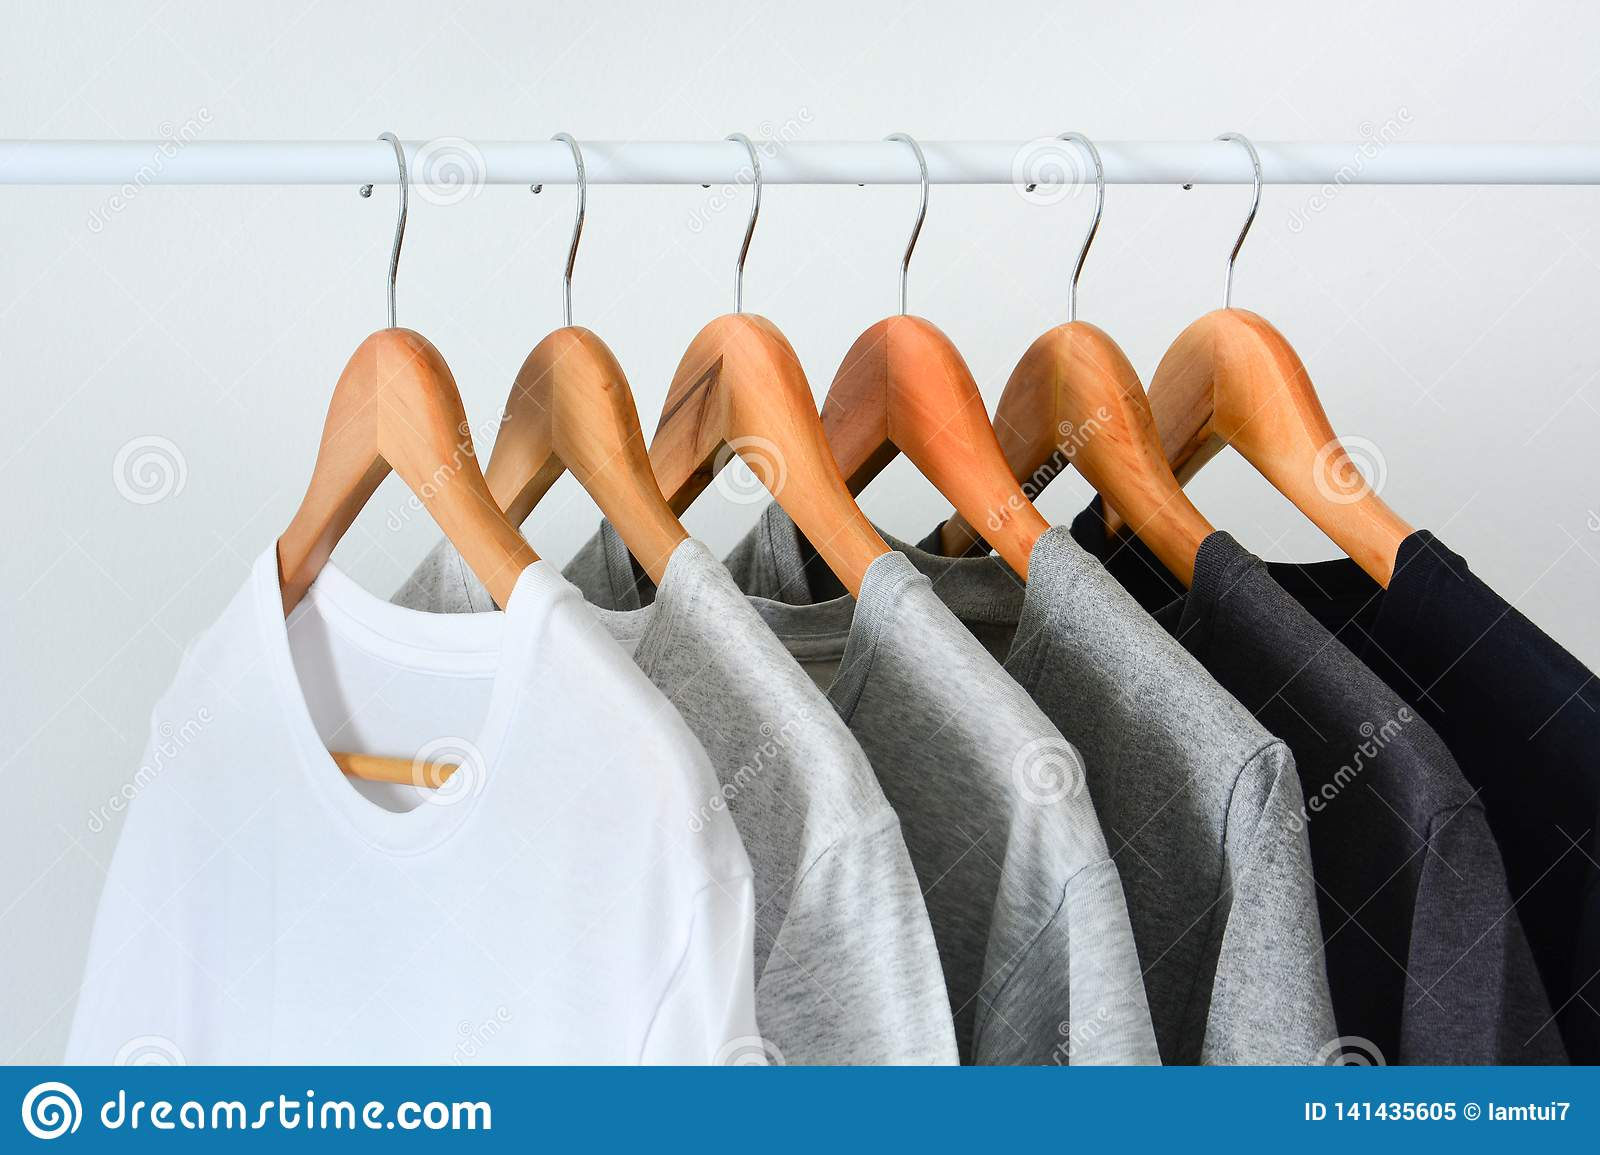 https www dreamstime com close up collection black gray white color monochrome hanging wooden clothes hanger closet clothing rack over image141435605